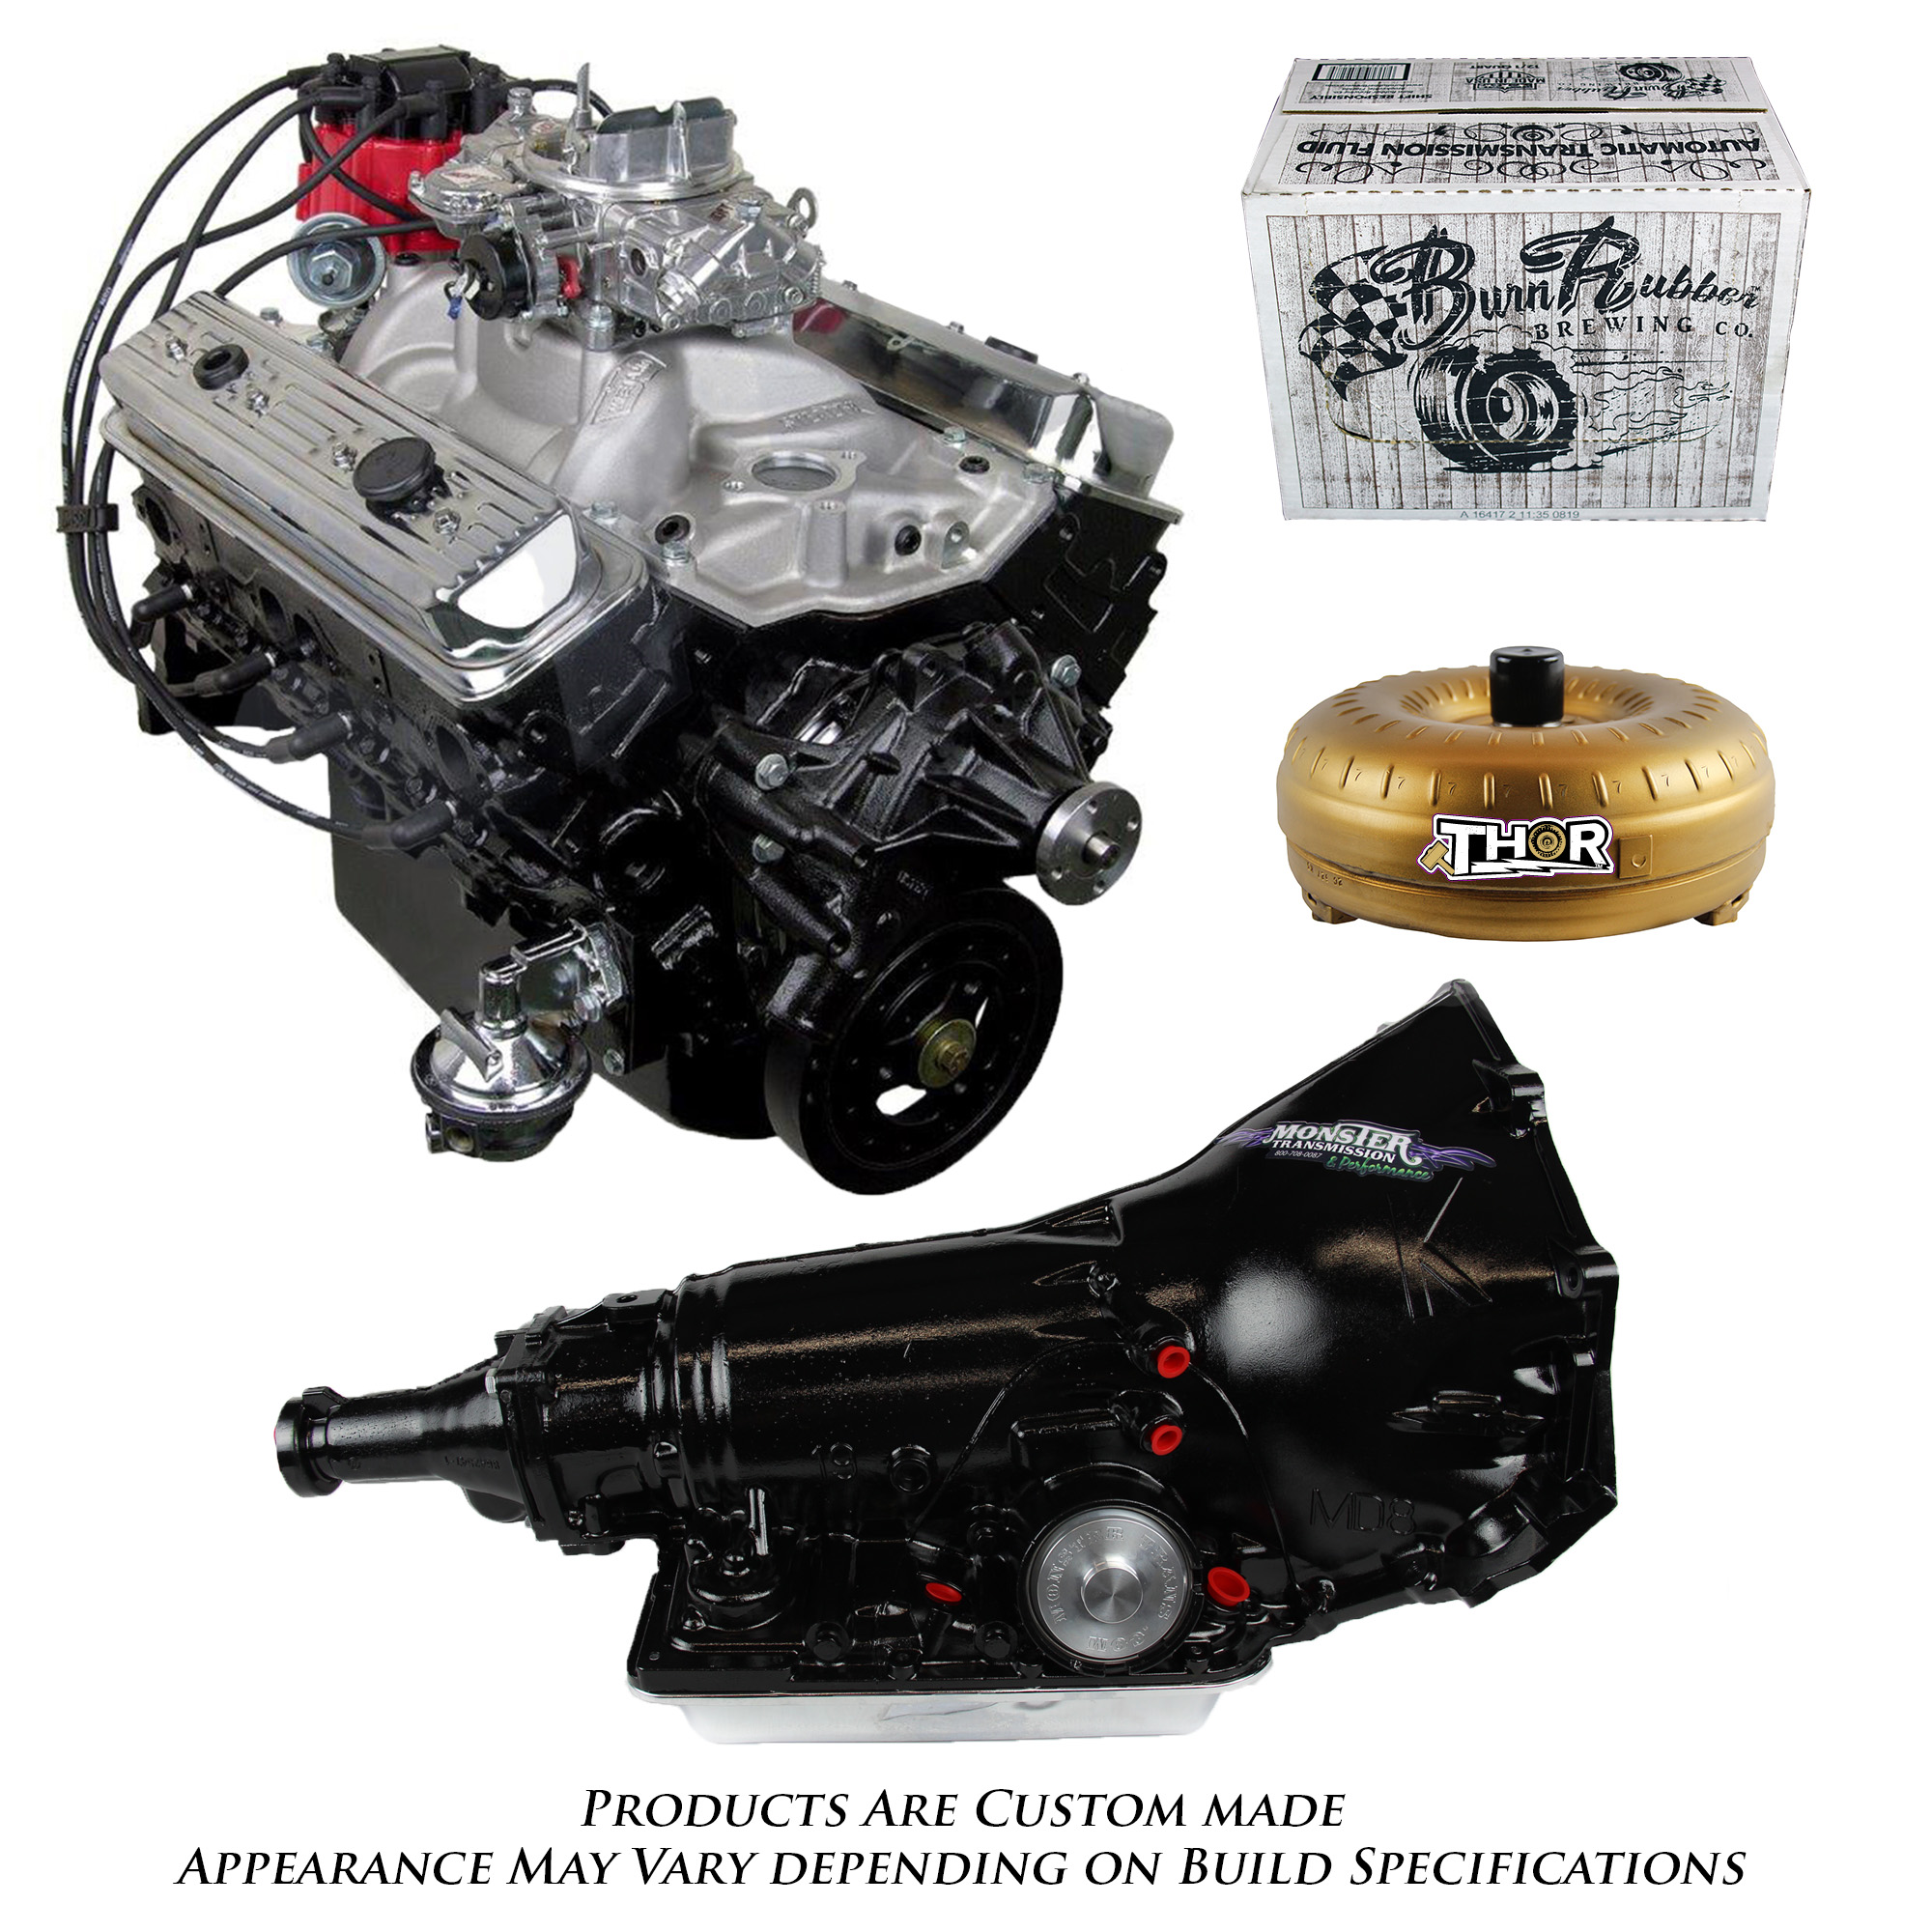 Chevy 350 Engine With Transmission For Sale: Monster Powertrain Package, Chevy 383 Engine And 700R4